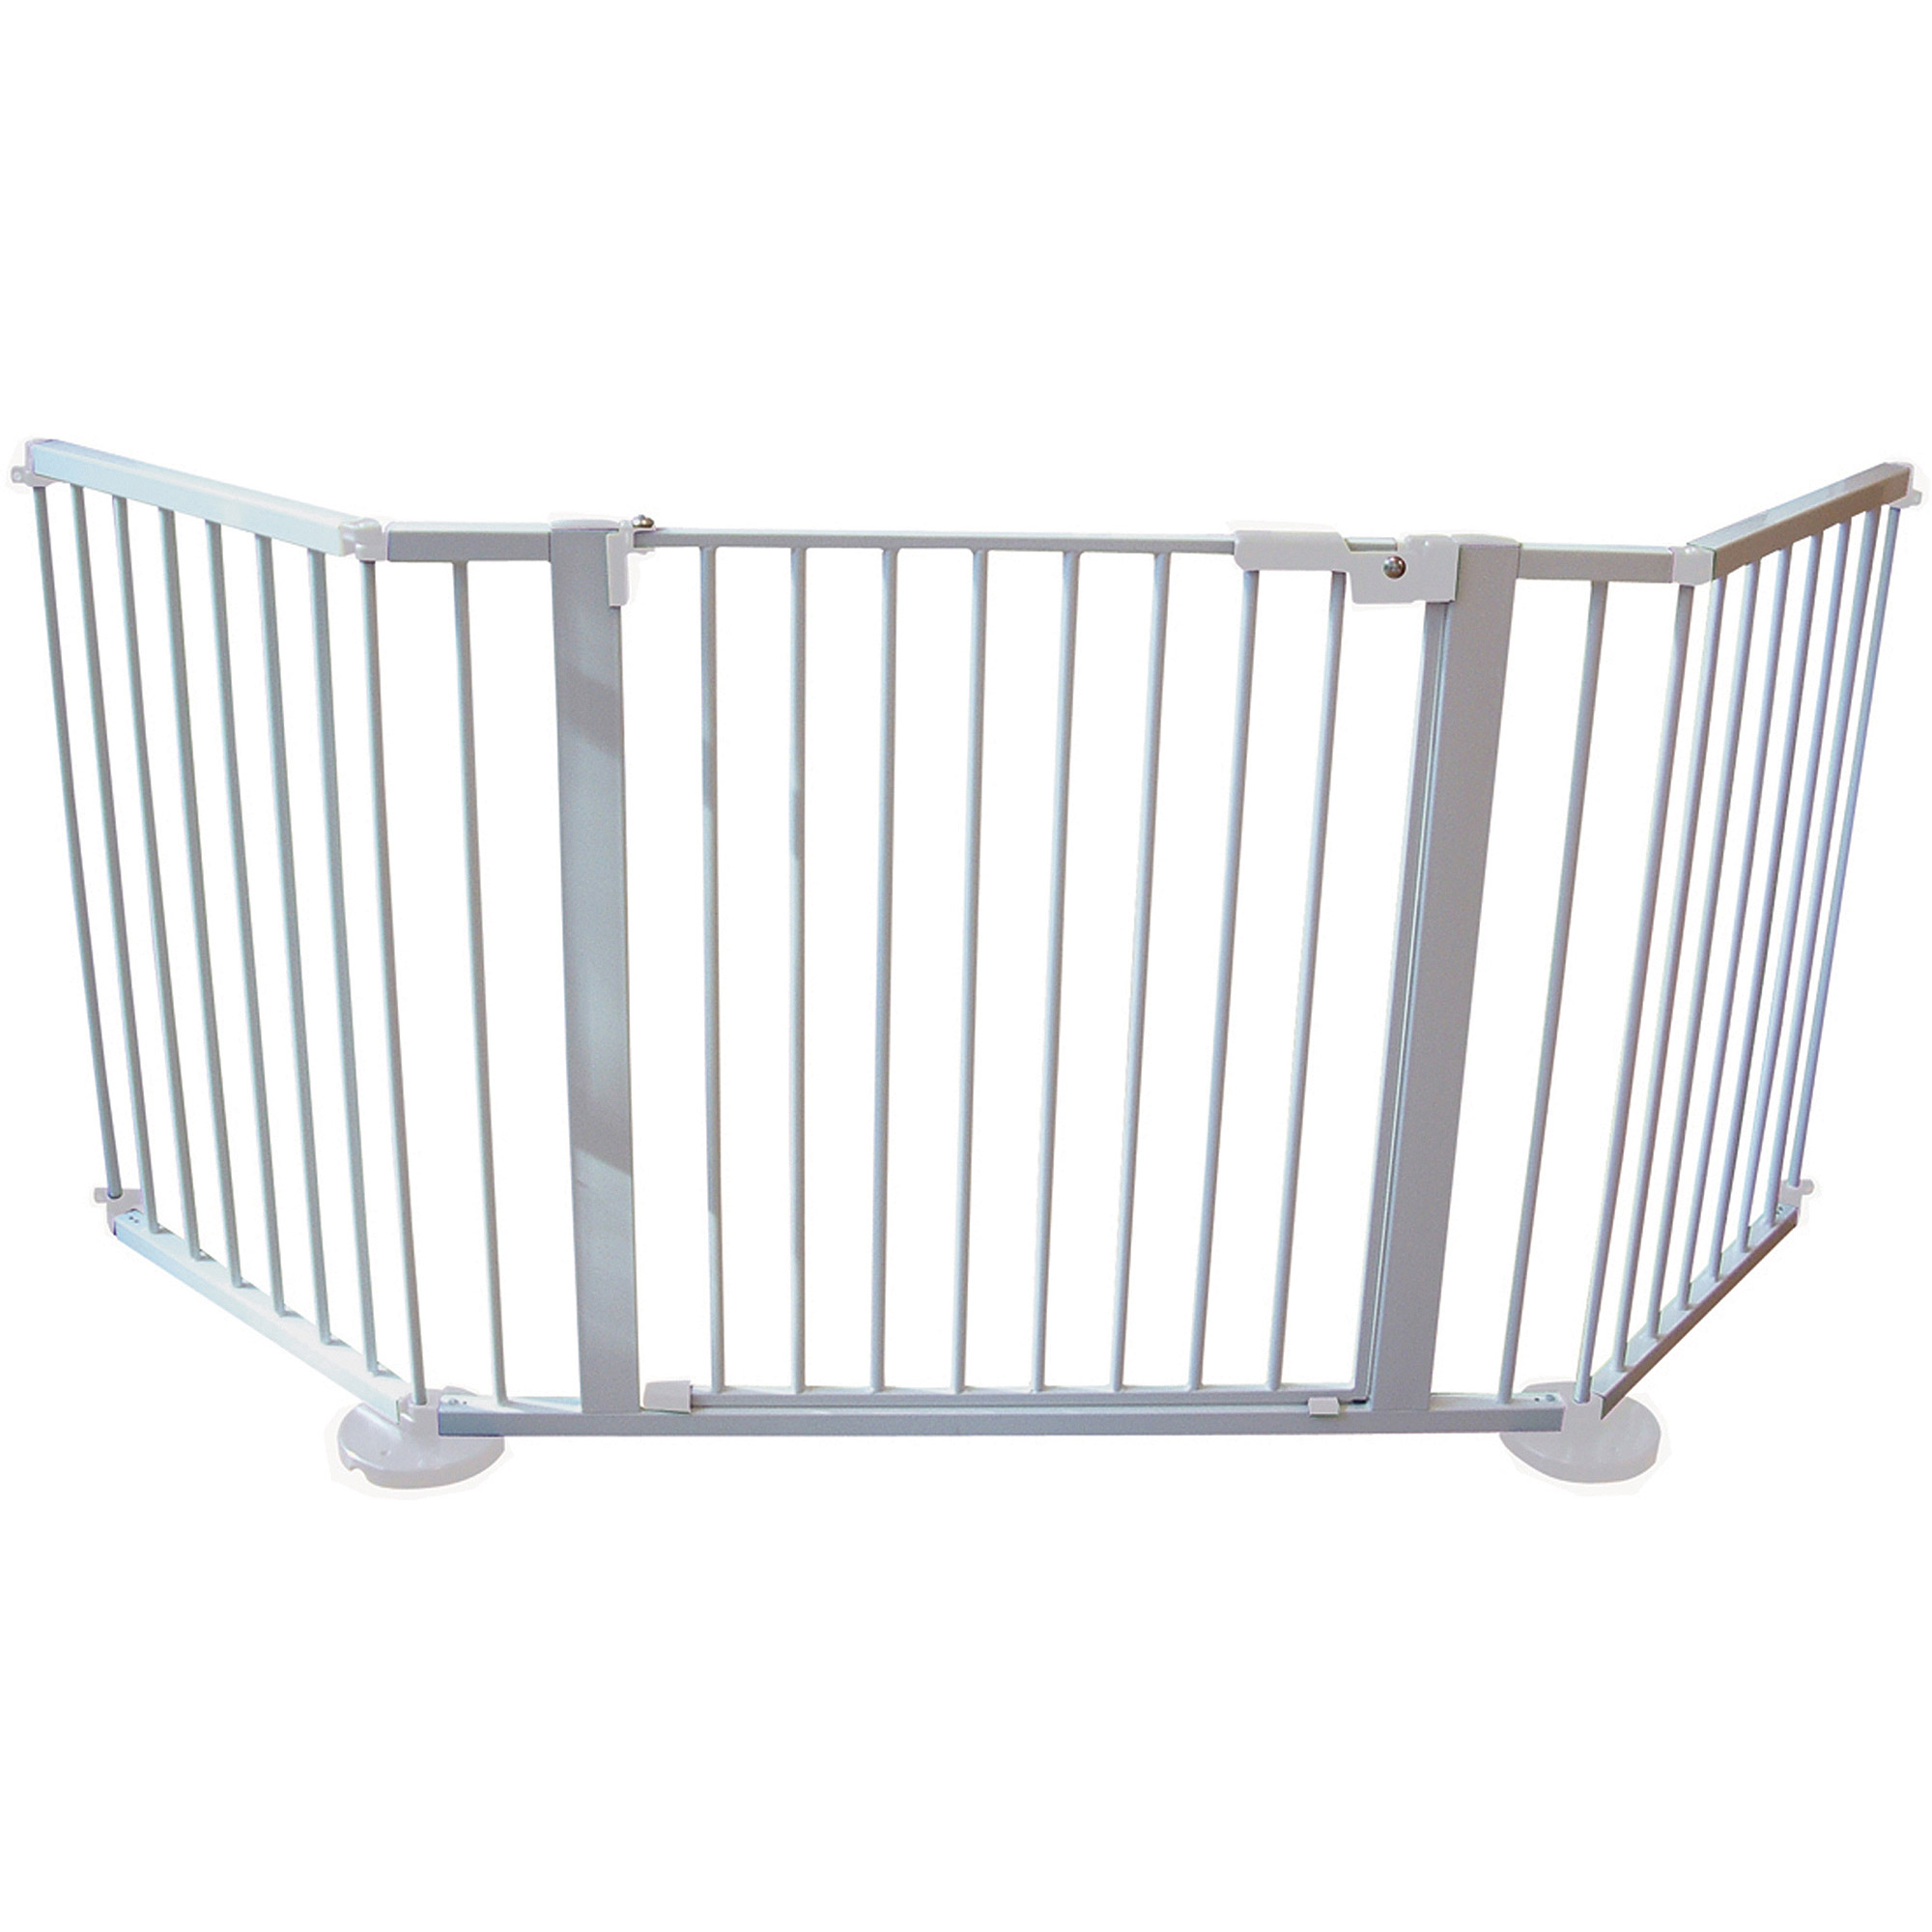 "Cardinal Gates VersaGate 40"" to 77.25"" wide x 30.5"" tall by Cardinal Gates"